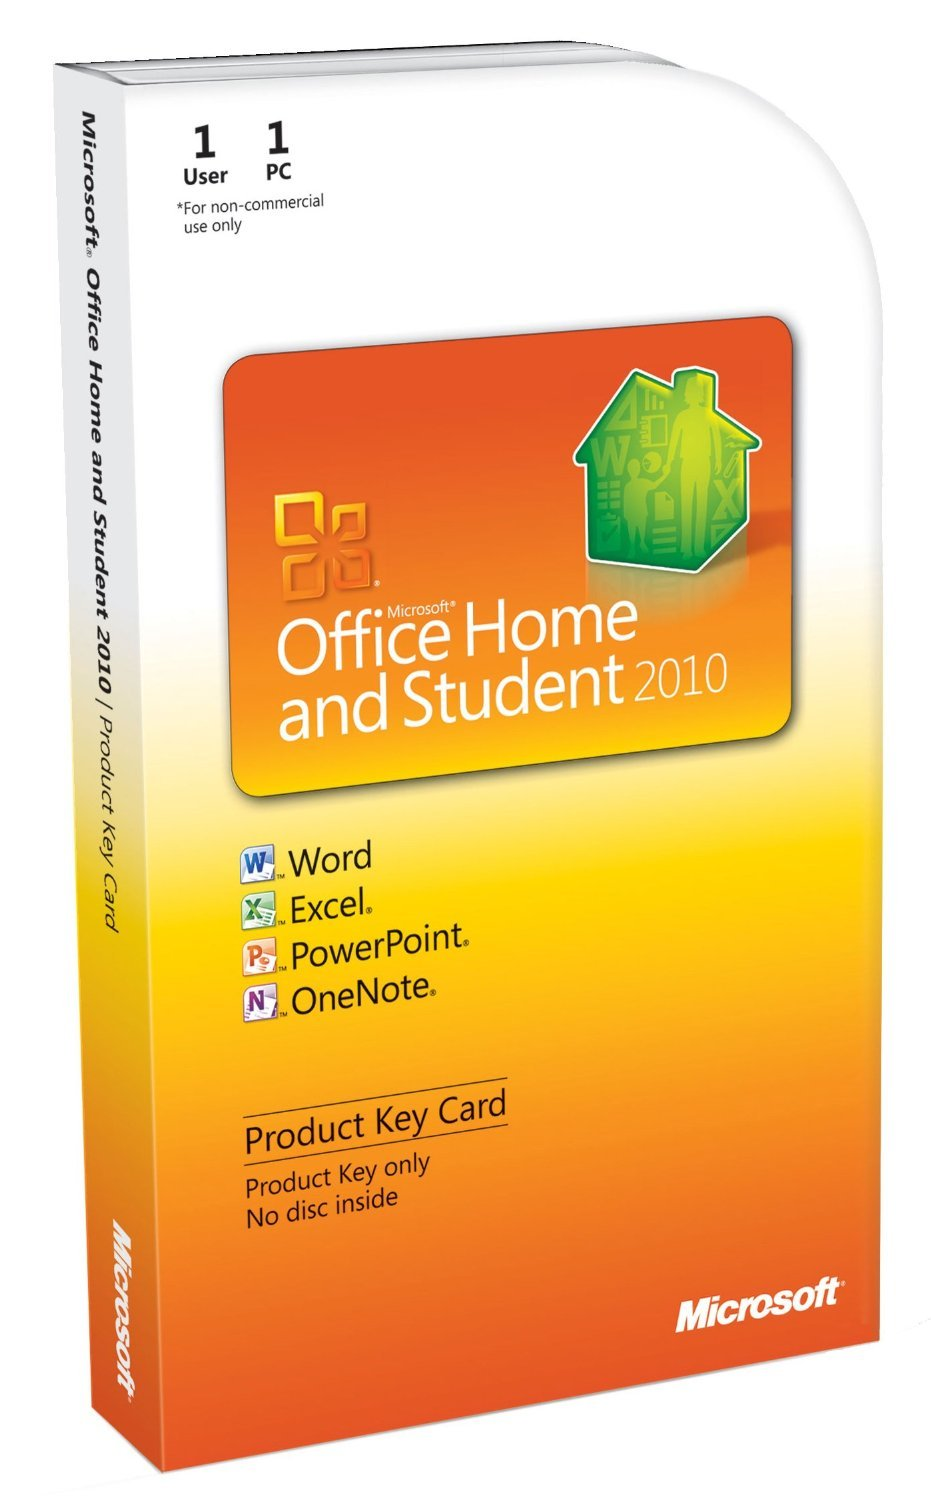 Microsoft Office Home & Student 2010 Product Key Card by Microsoft